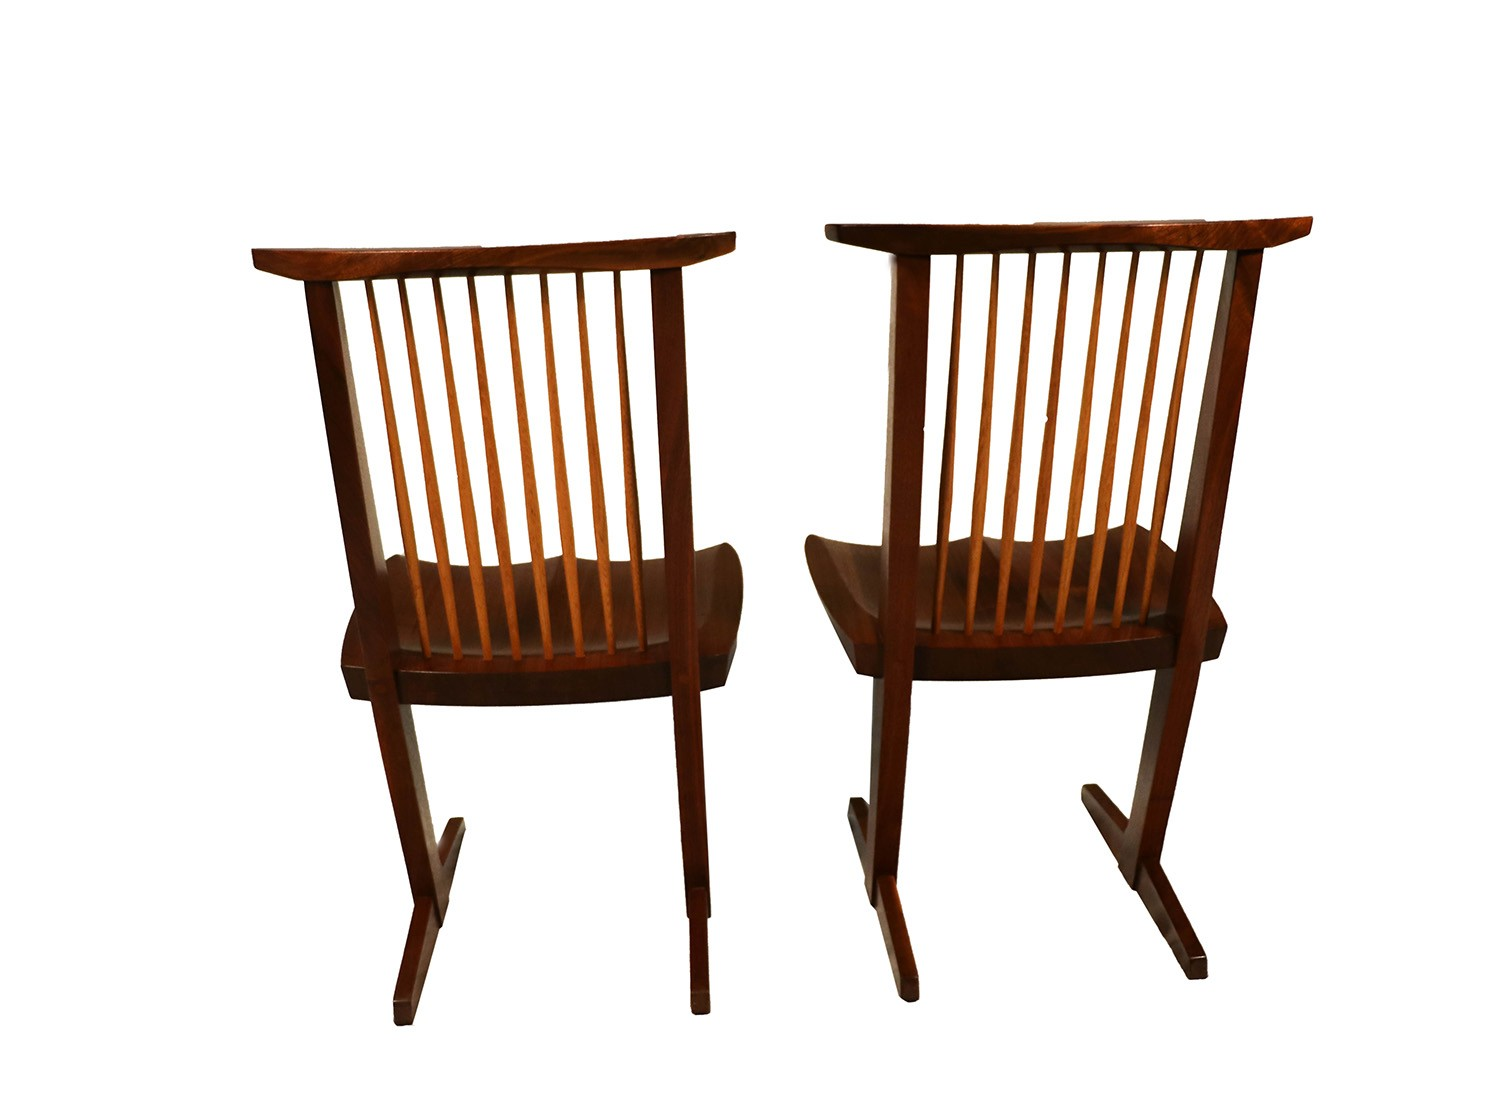 tall desk chairs with backs stool chair for vanity george nakashima conoid